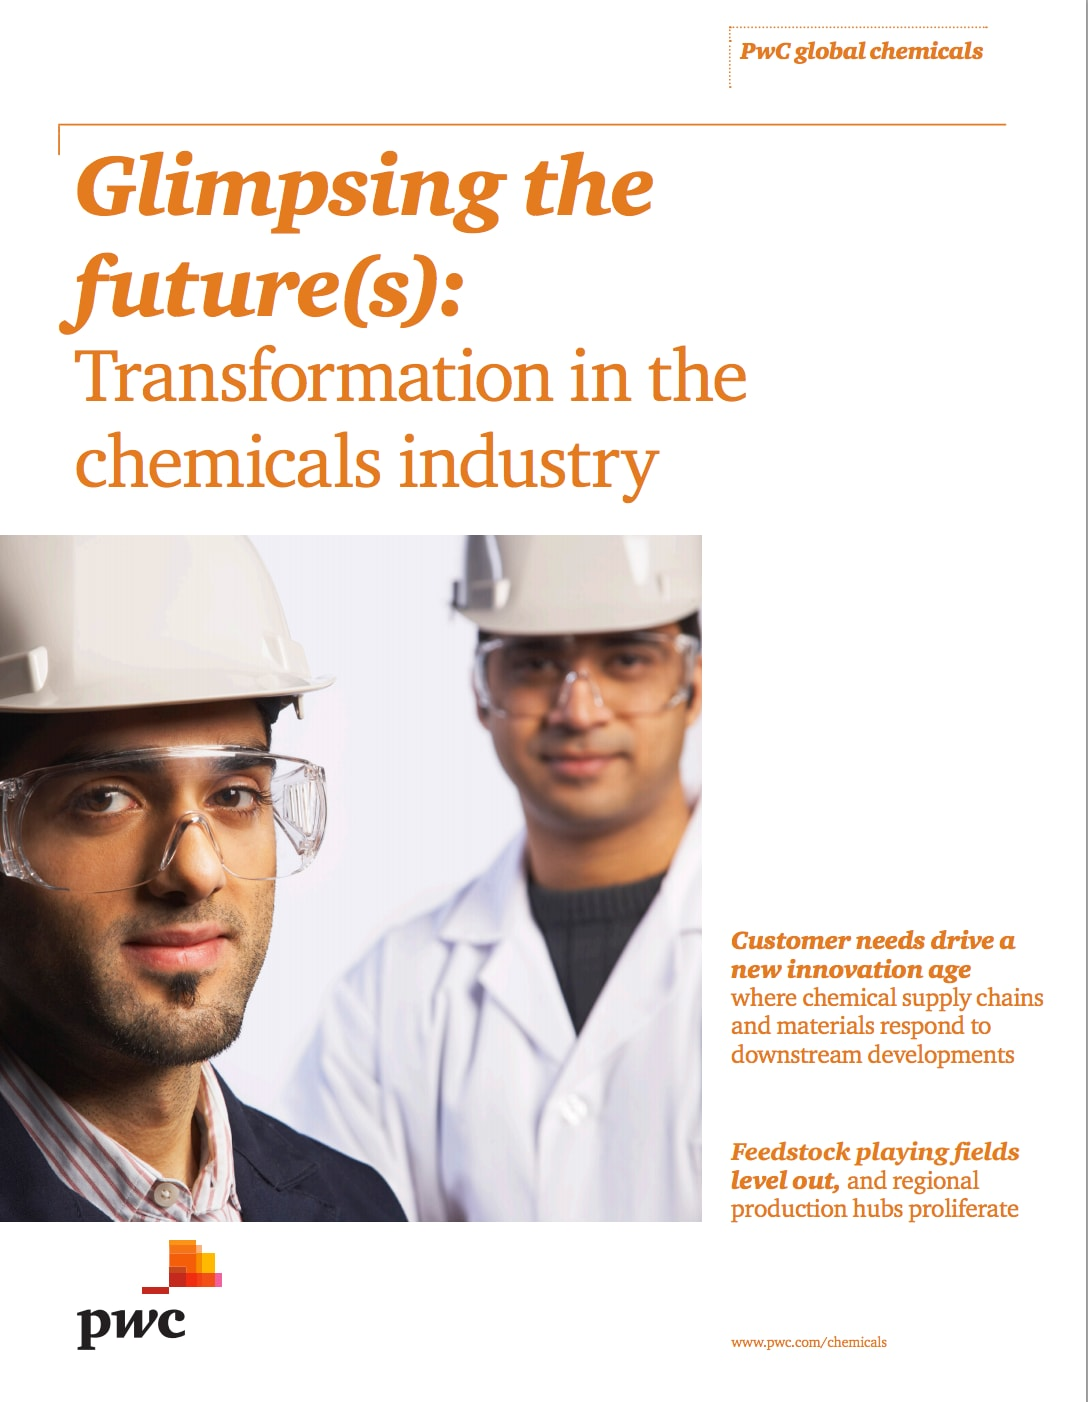 Glimpsing the future(s): Transformation in the chemicals industry